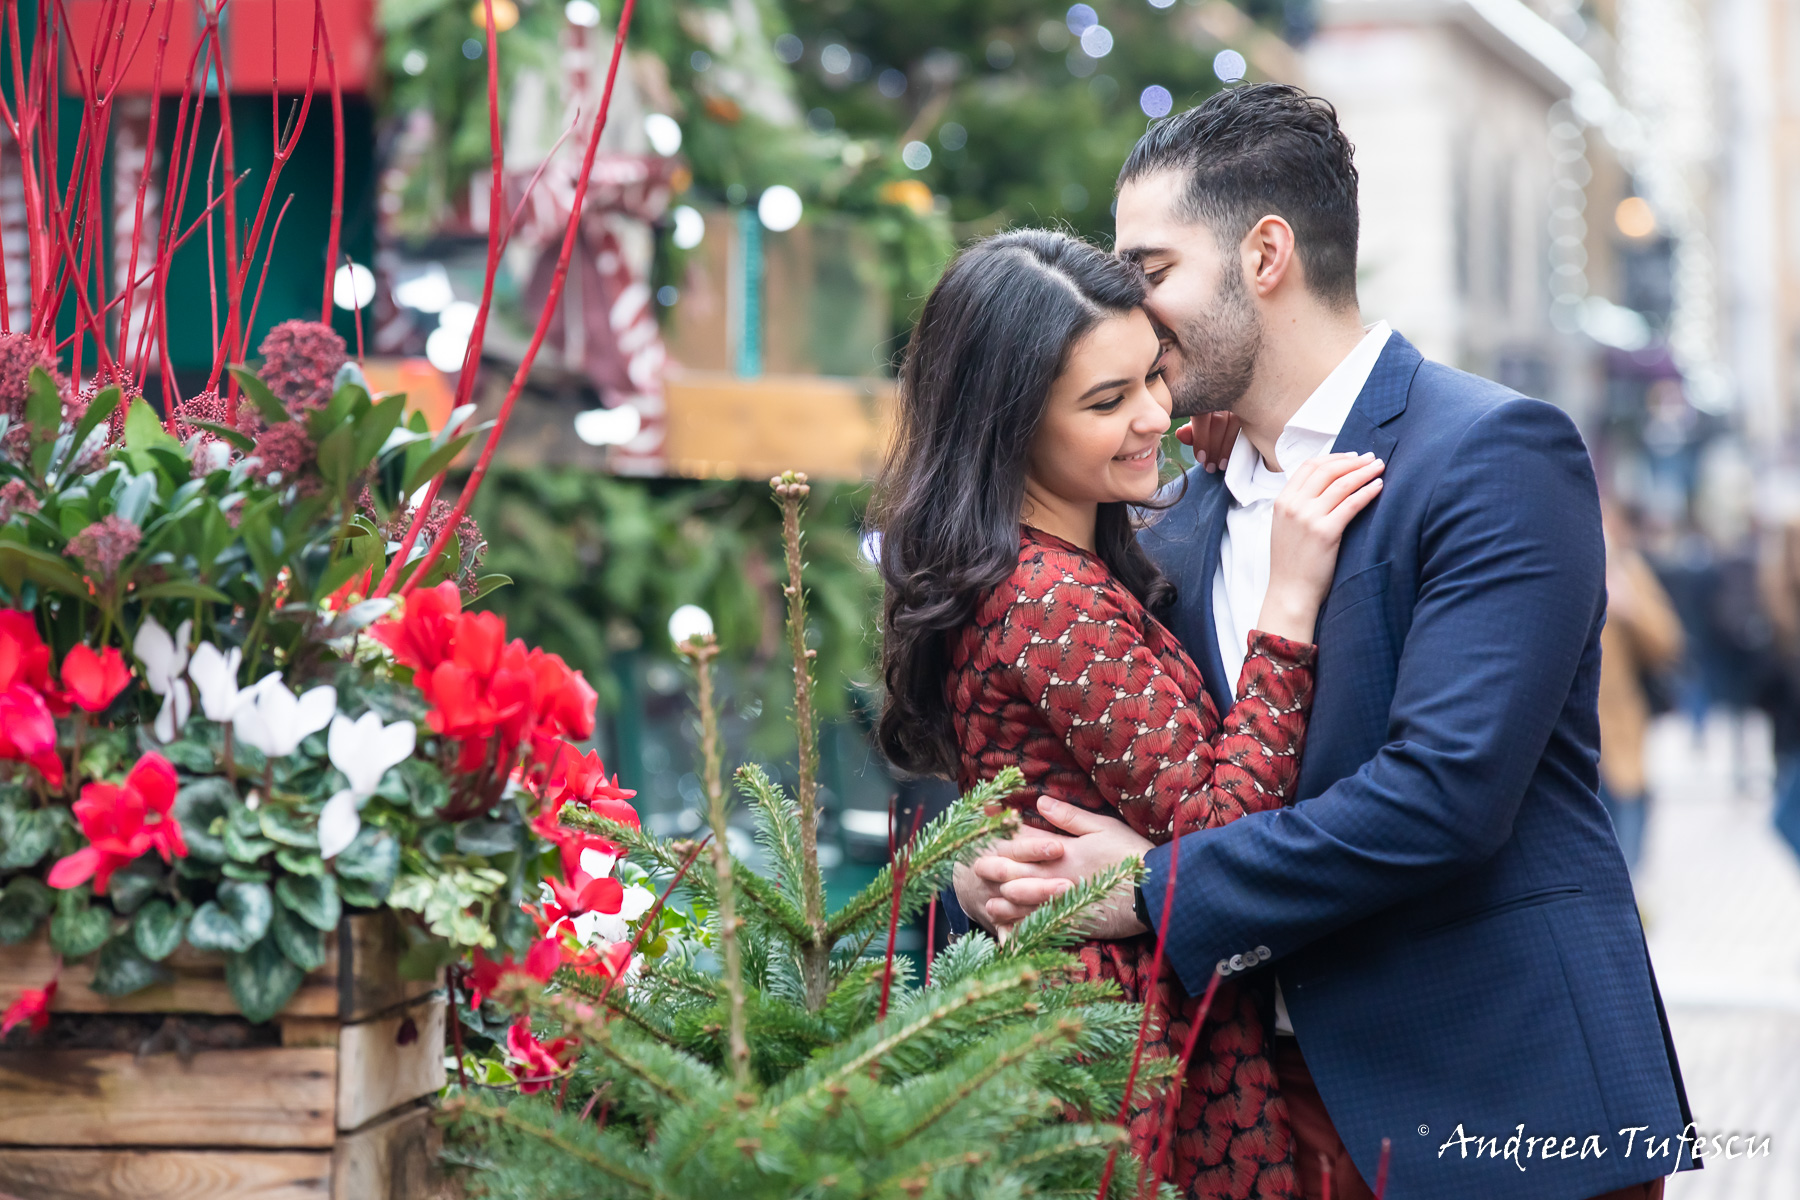 Yuliya & Hayk Engagement Photoshoot Central London - images by Andreea Tufescu